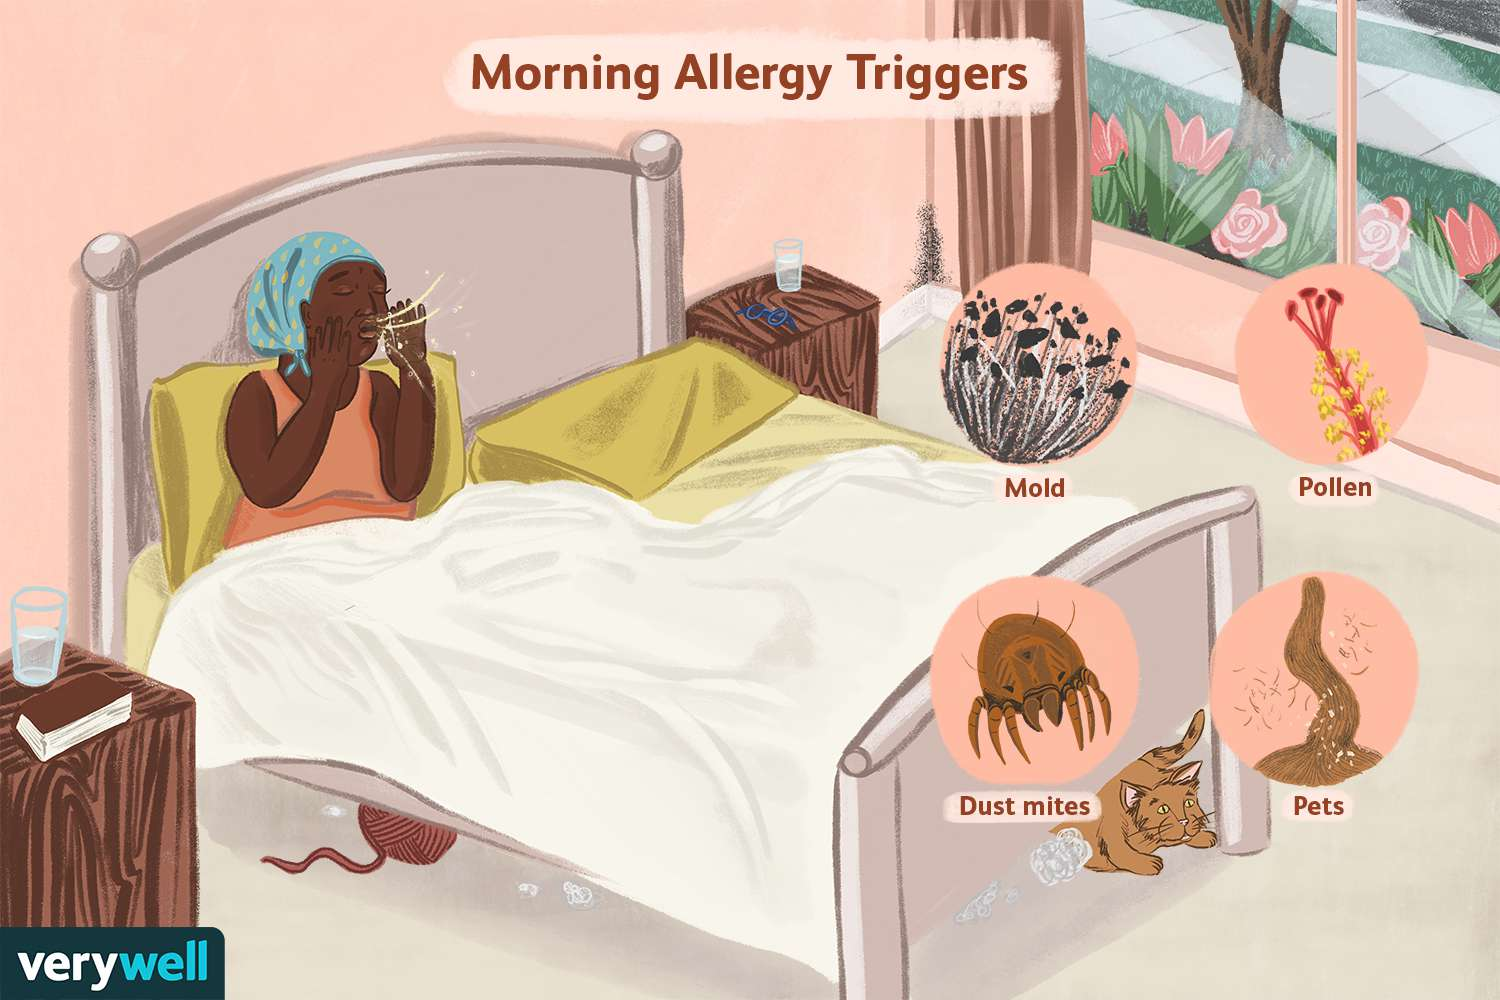 Morning Allergy Triggers